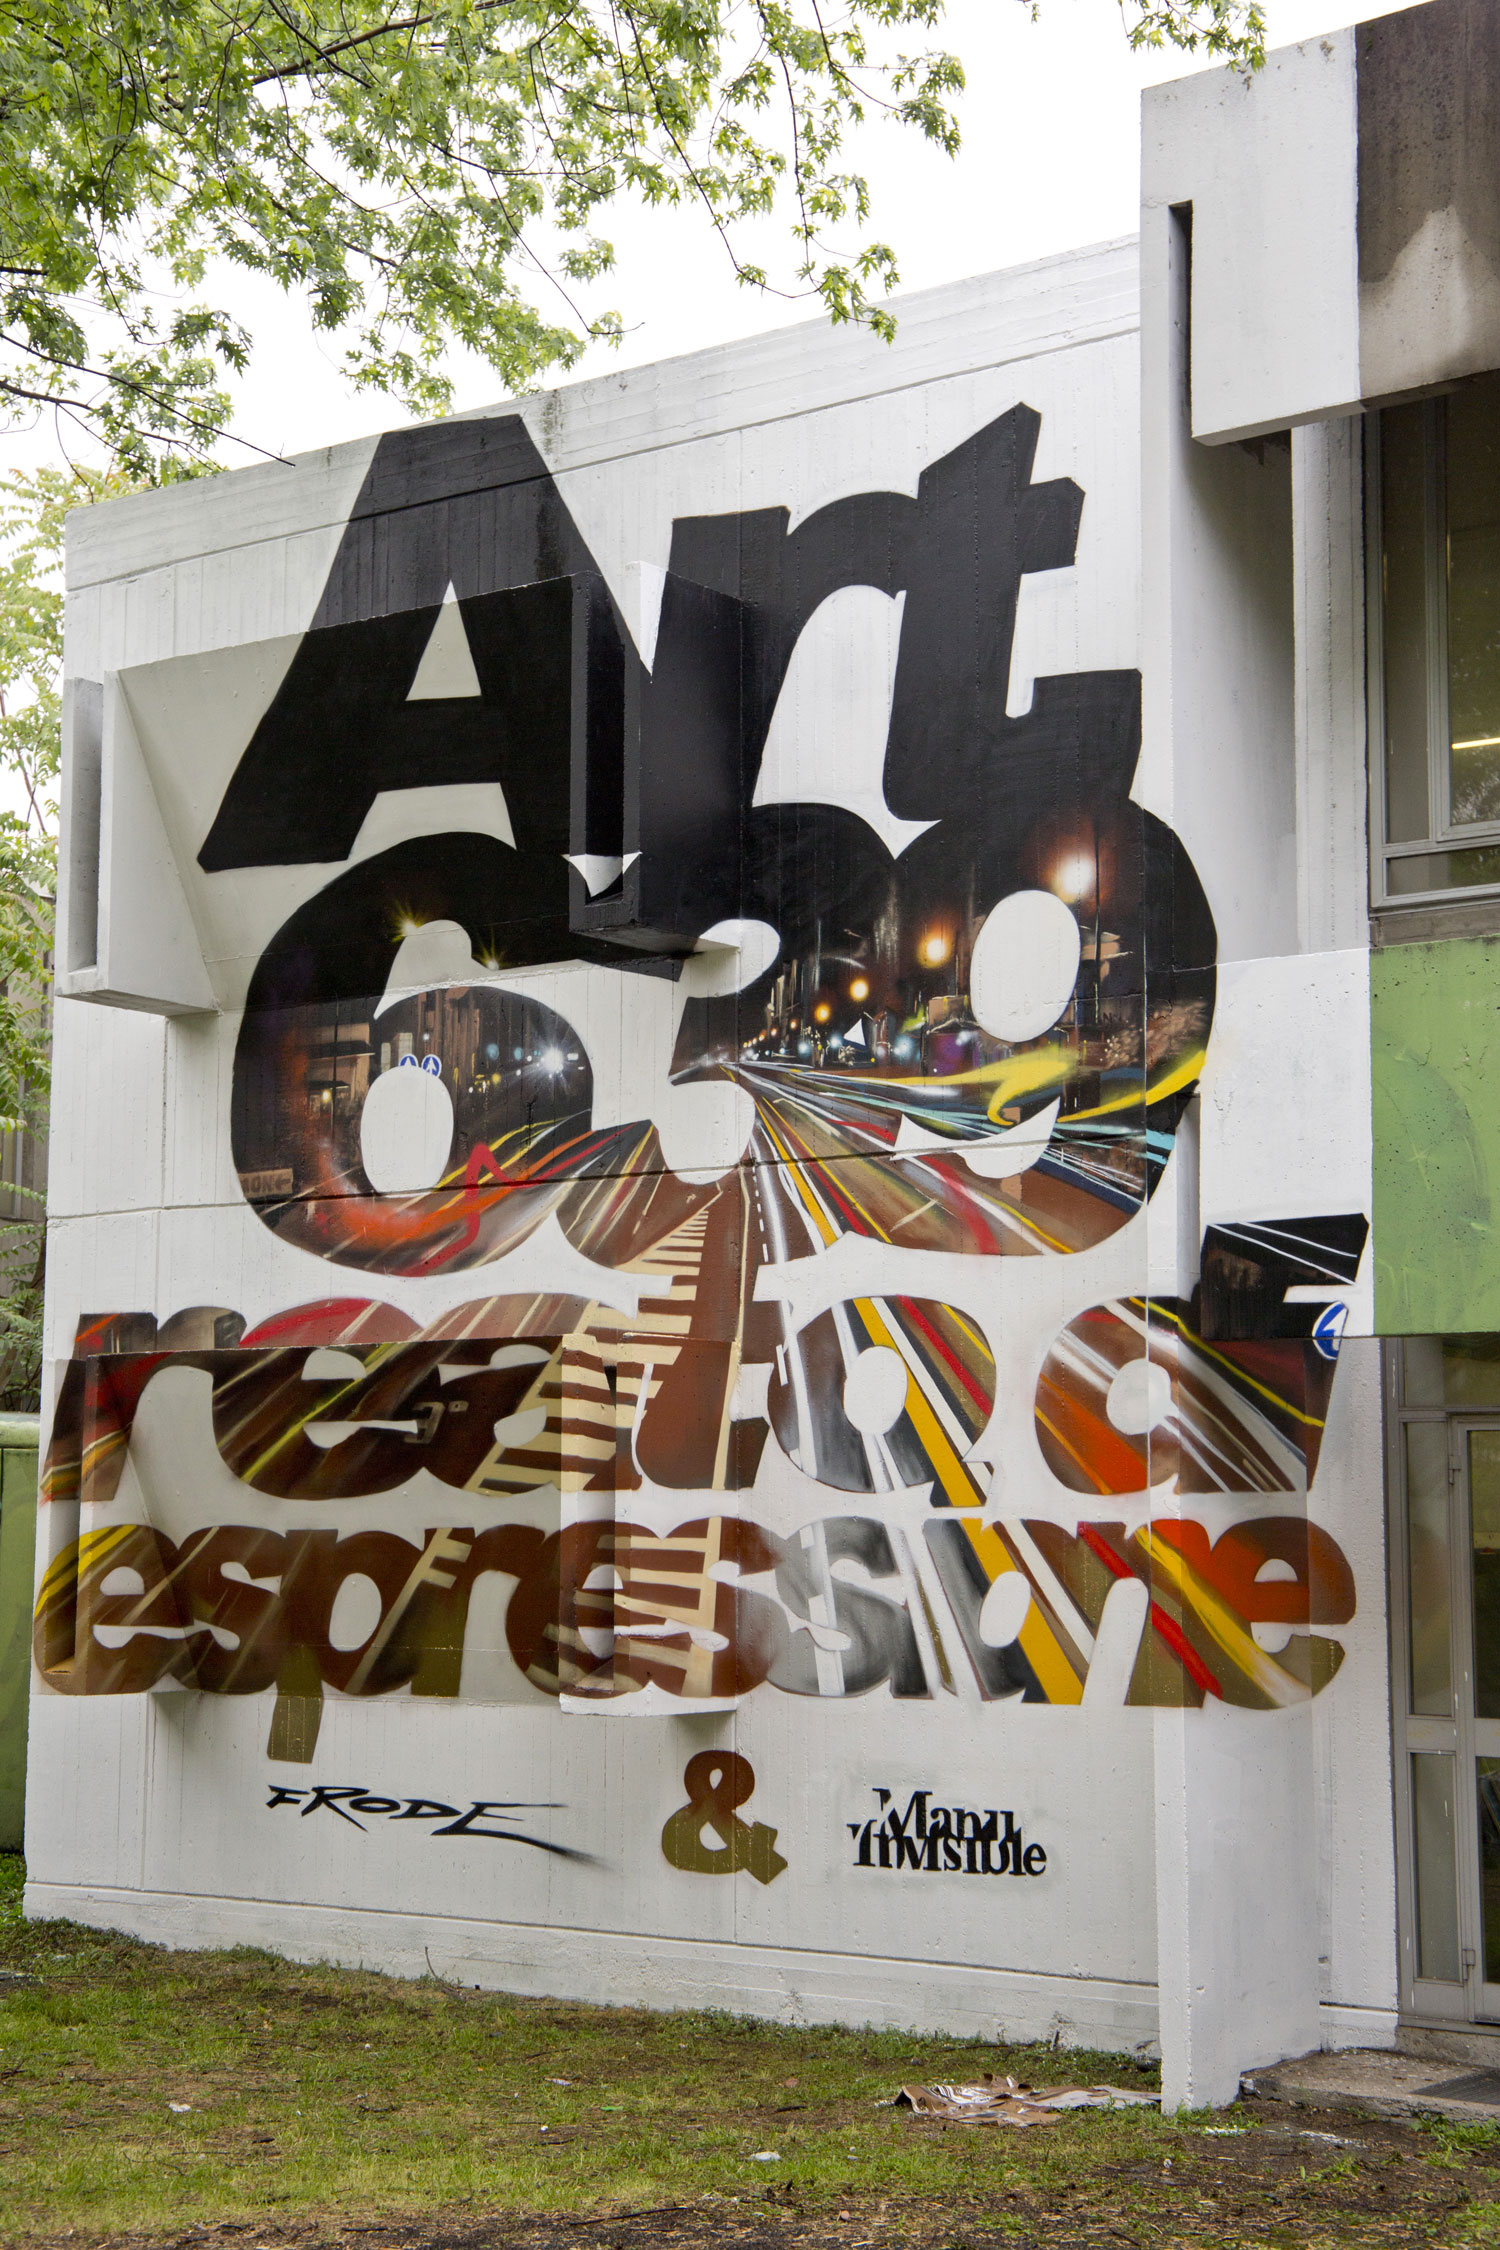 ''Art. 639 reato di espressione'' Spray and quartz paint on wall 8x6,5 m Anamorphism Feat. Frode Meeting of styles Milano 2017